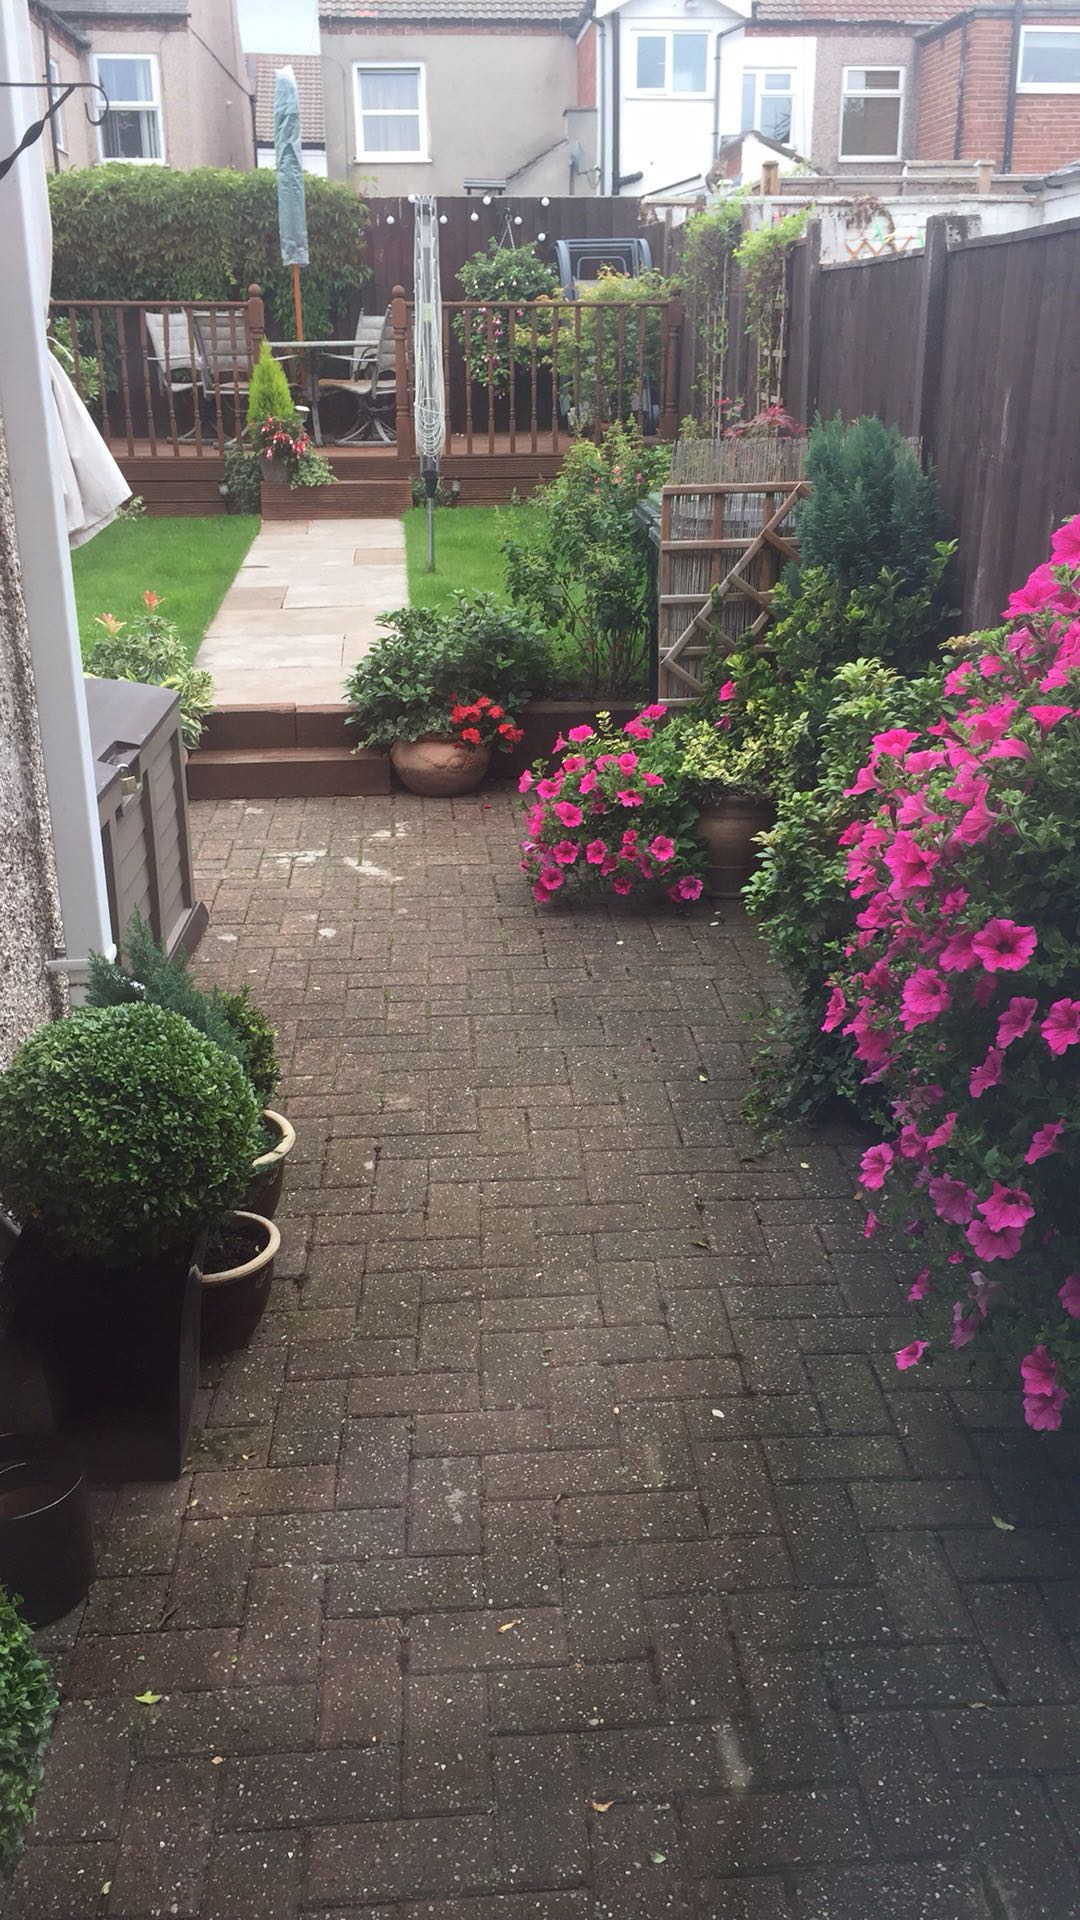 Property in Giltbrook, Eastwood, NG163EW RoomsLocal image